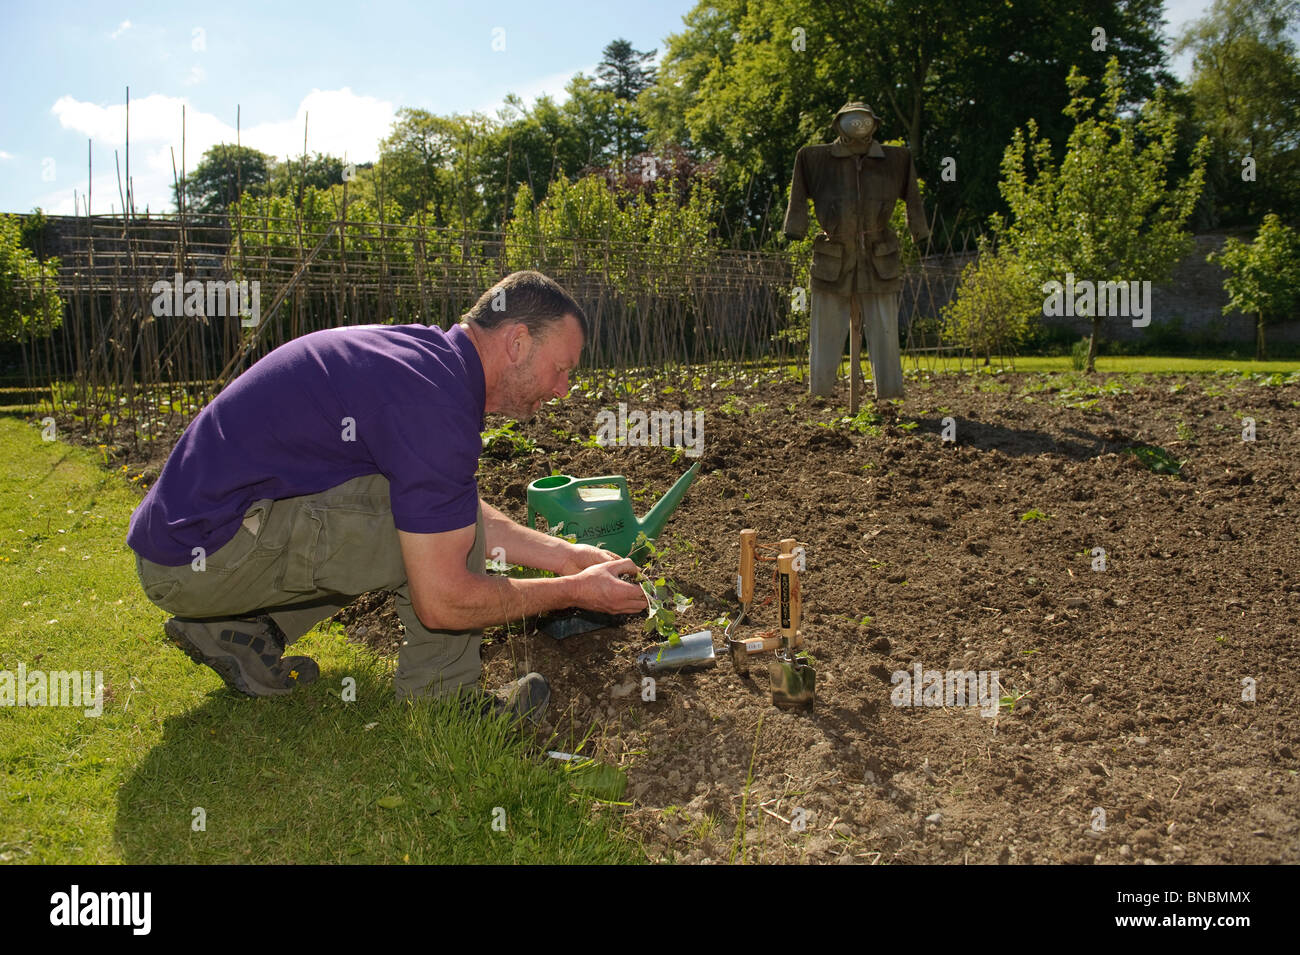 A gardener at Llanerchaeron National Trust property preparing to plant seedlings in the vegatable patch, Wales UK - Stock Image